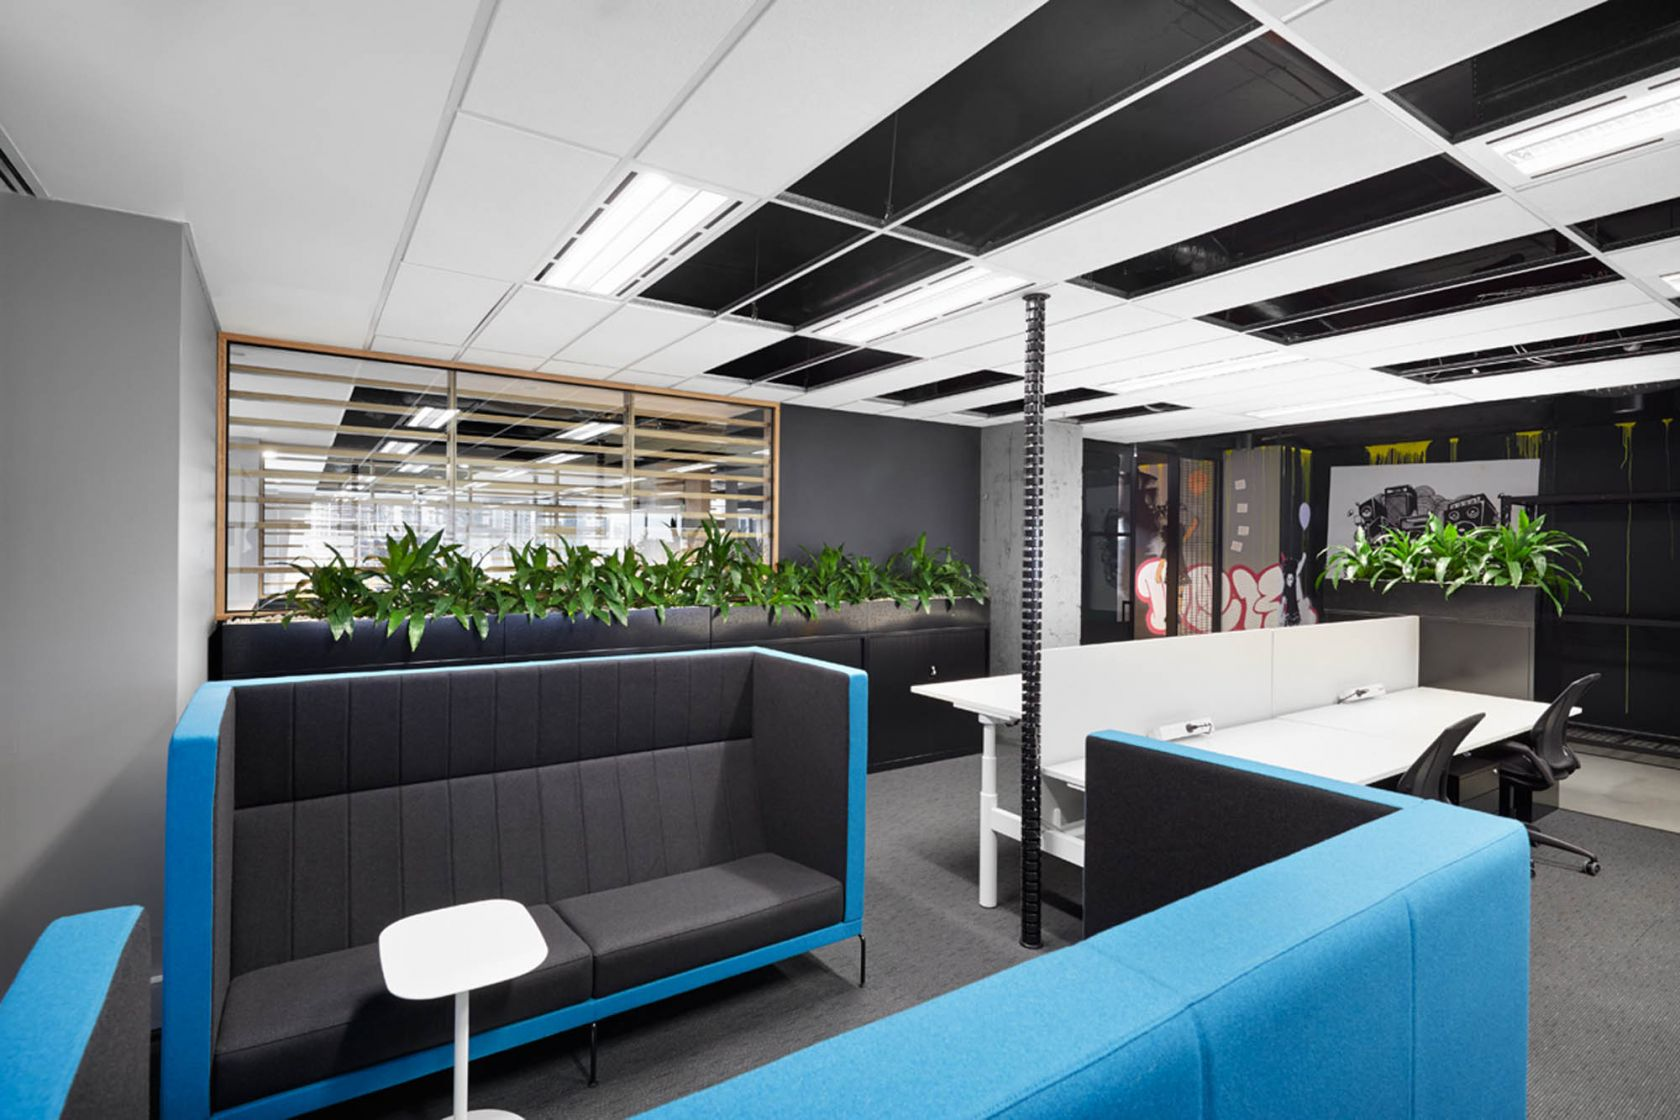 william street melbourne workplace fitout focus collaboration plants partition desk